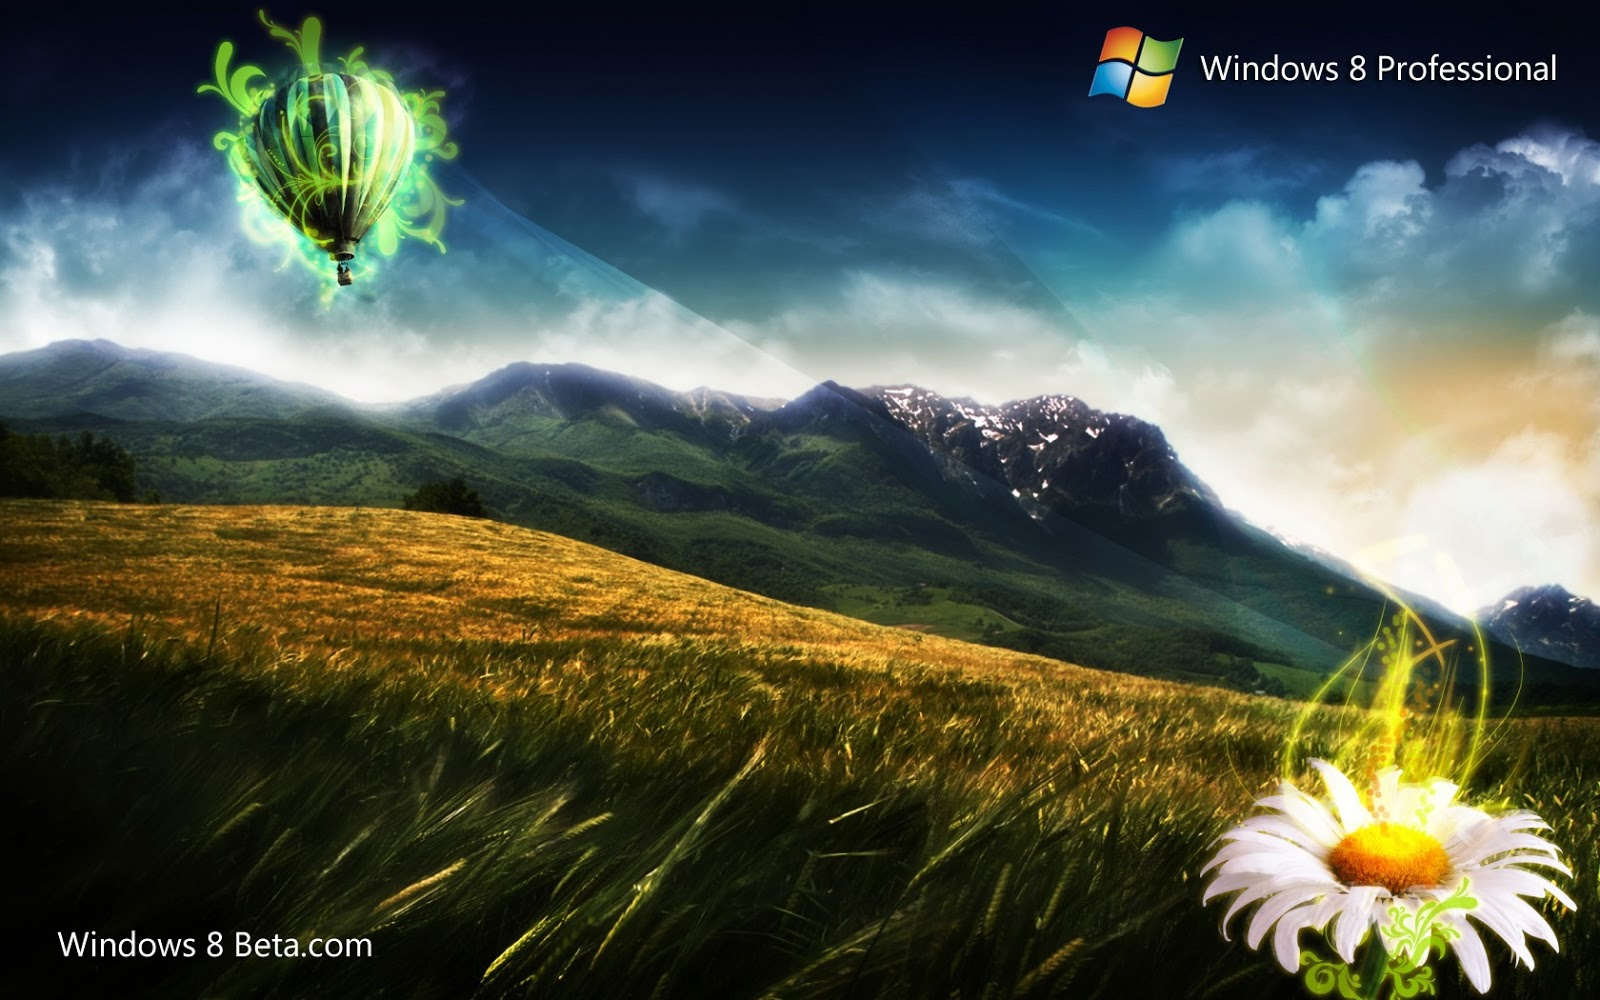 http://4.bp.blogspot.com/-xOQ8oMfERd0/UJaDK87QAII/AAAAAAAAG4M/yZlGrlonTSw/s1600/Windows-8-wallpaper21.jpg